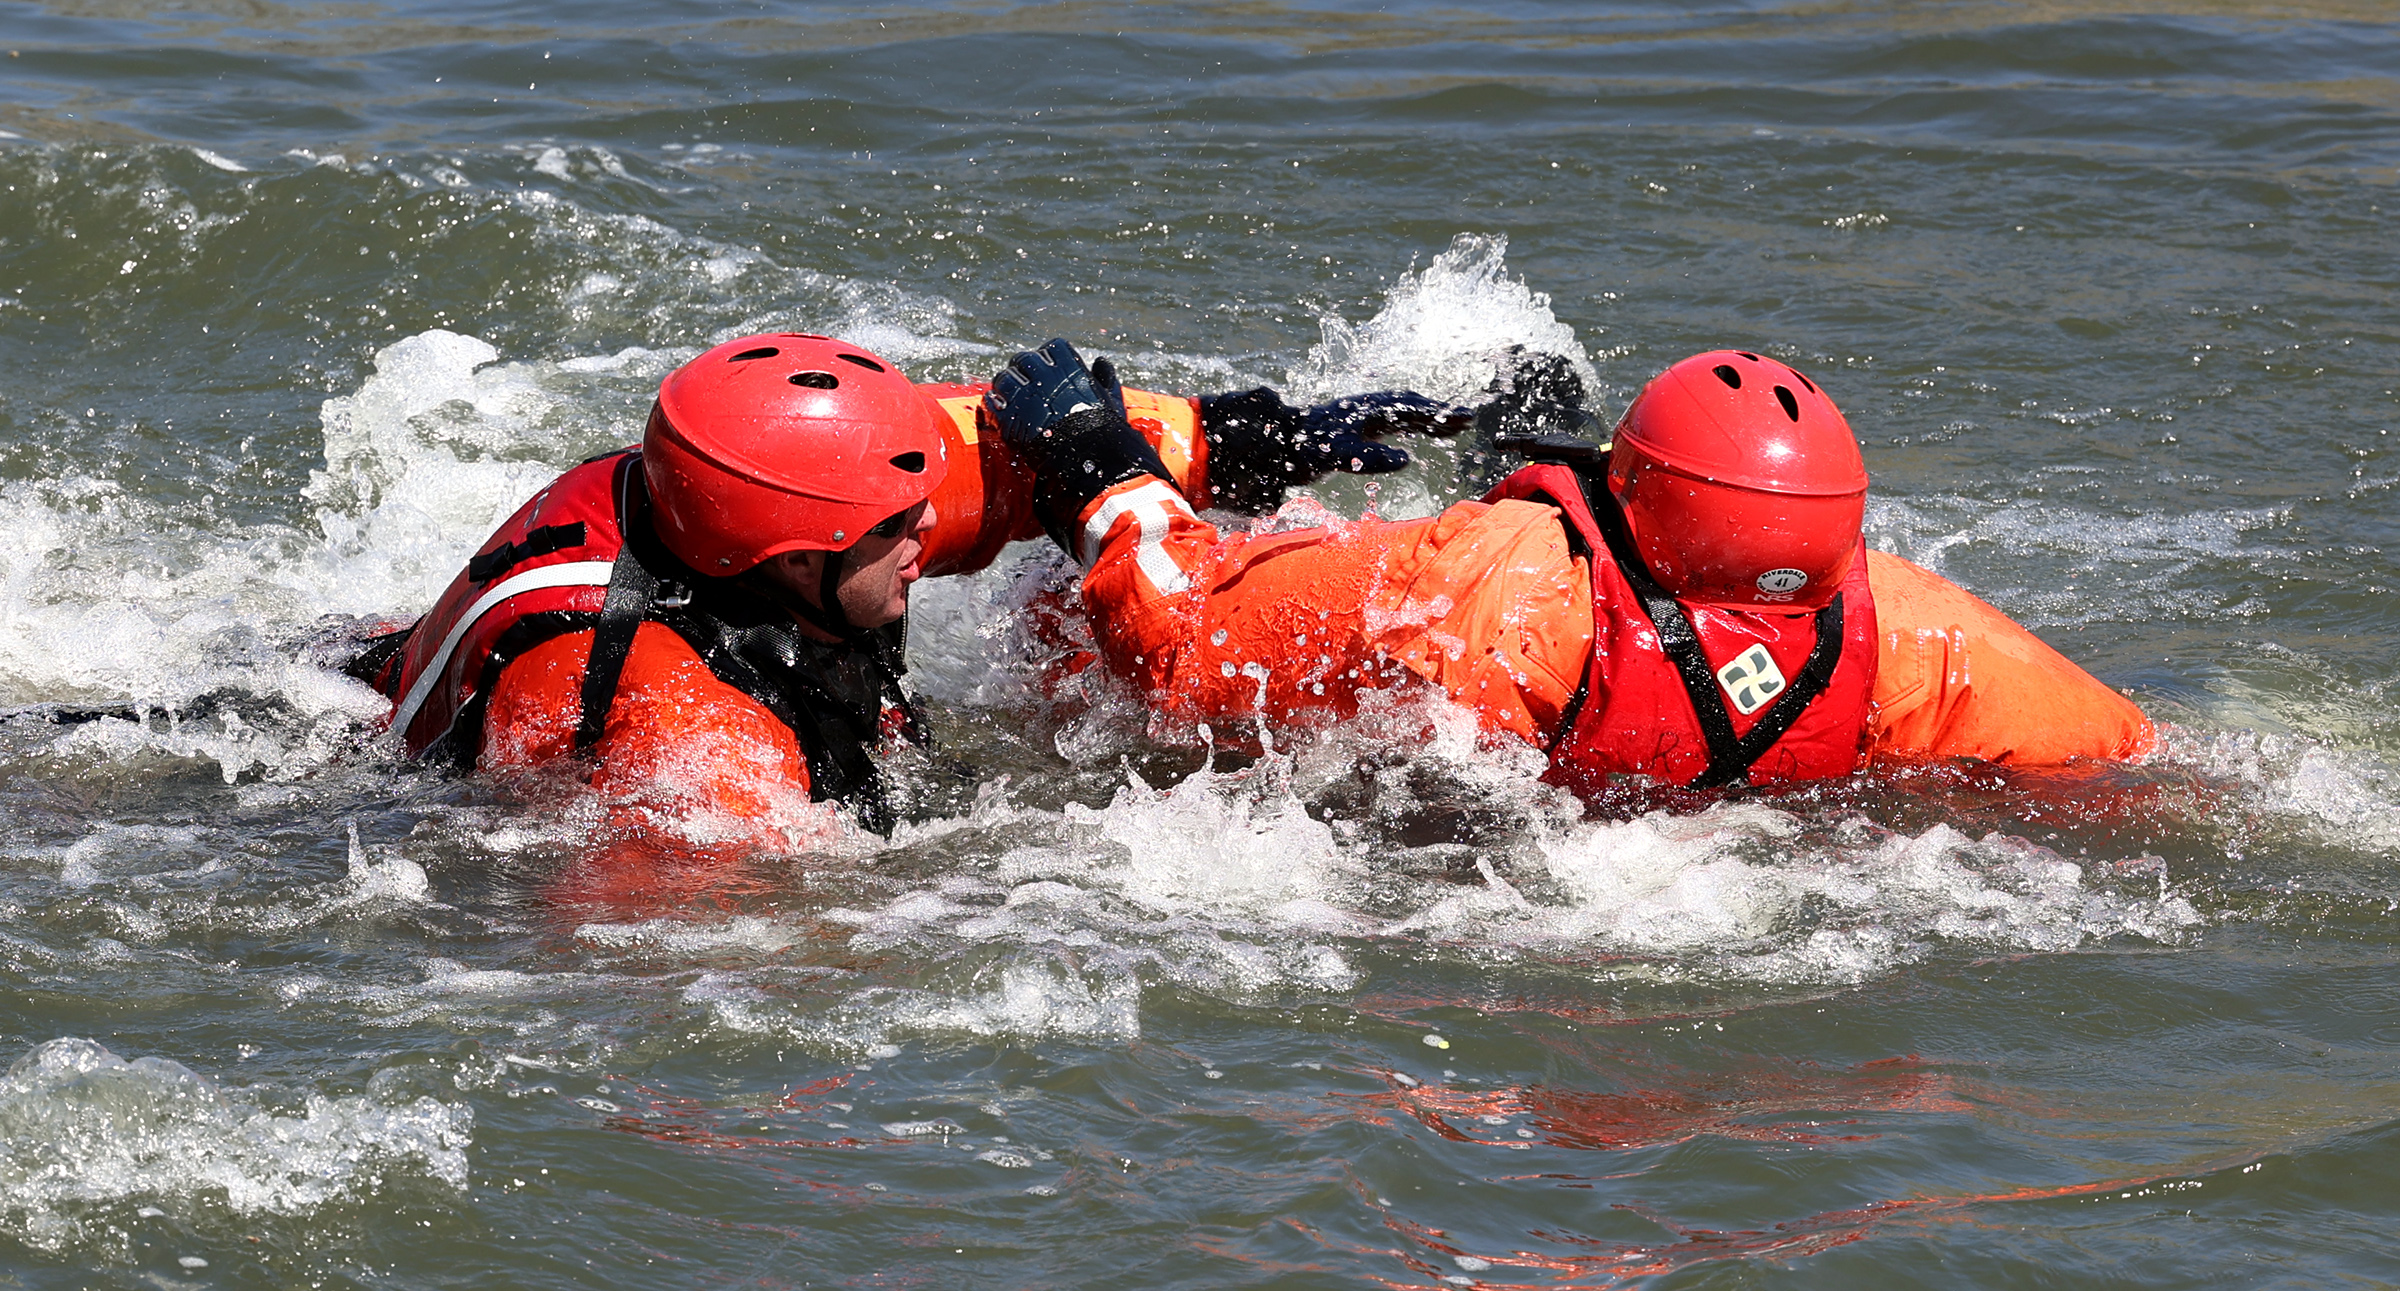 Members of the Weber Fire District participate in swift-water training at Fort Buenaventura Park in Ogden on Tuesday, April 20, 2021. They will be training over the next few days.